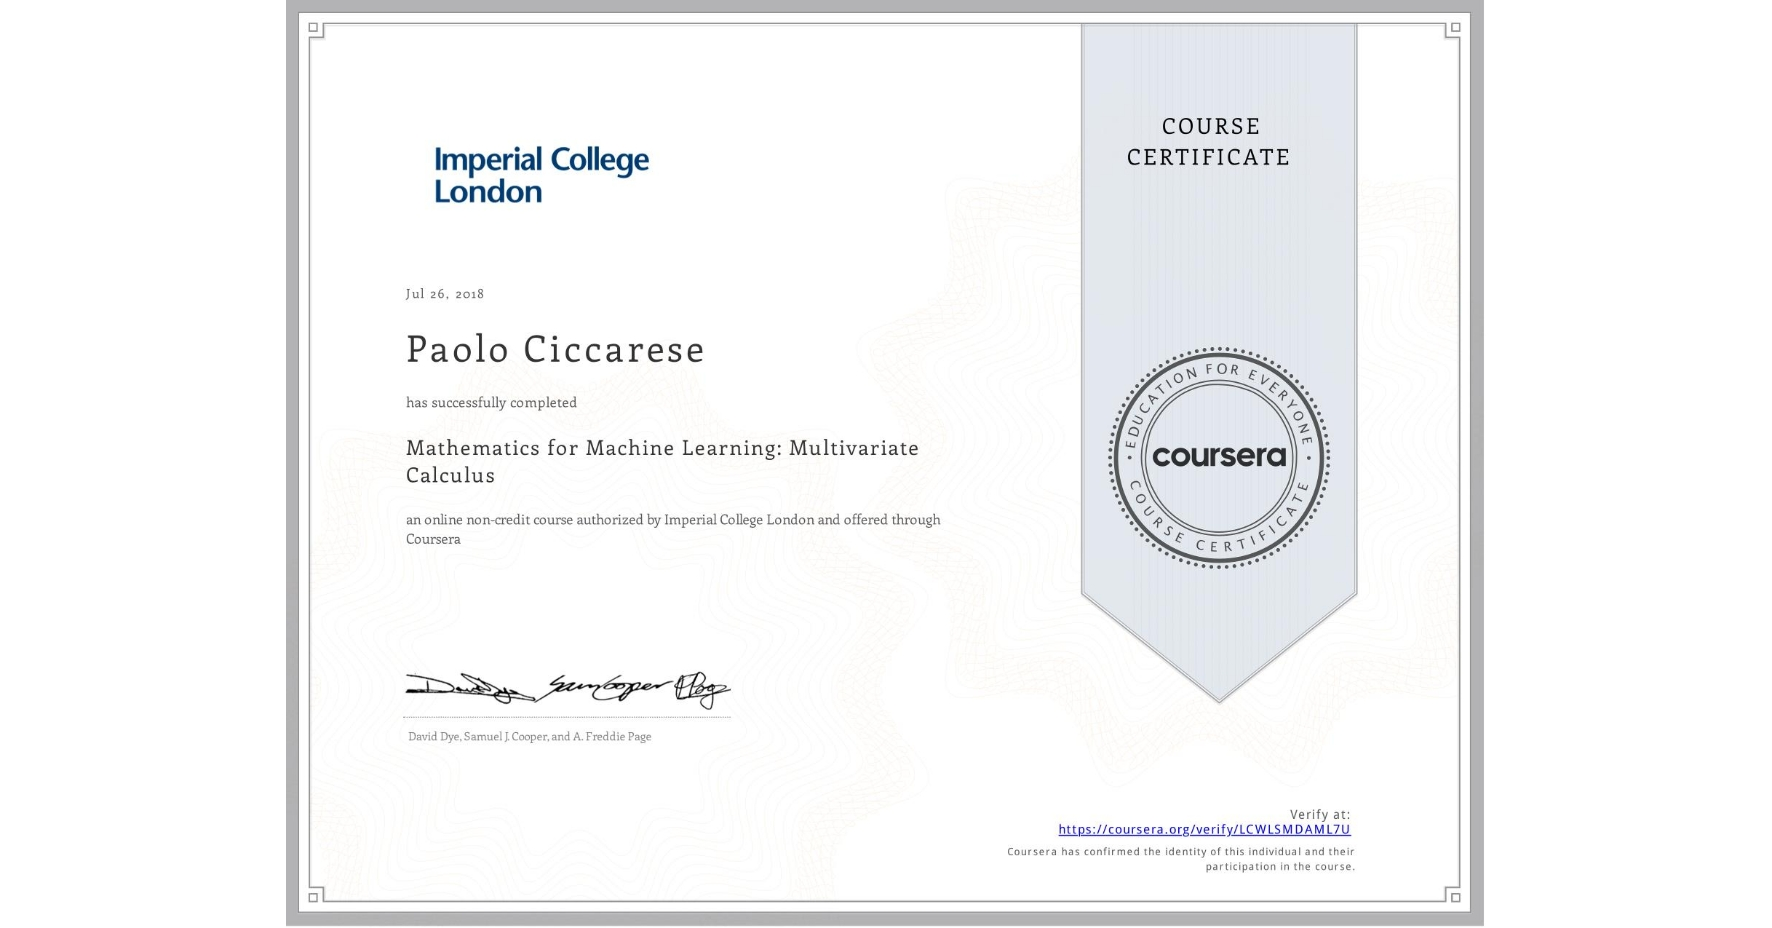 View certificate for Paolo Ciccarese, Mathematics for Machine Learning: Multivariate Calculus, an online non-credit course authorized by Imperial College London and offered through Coursera